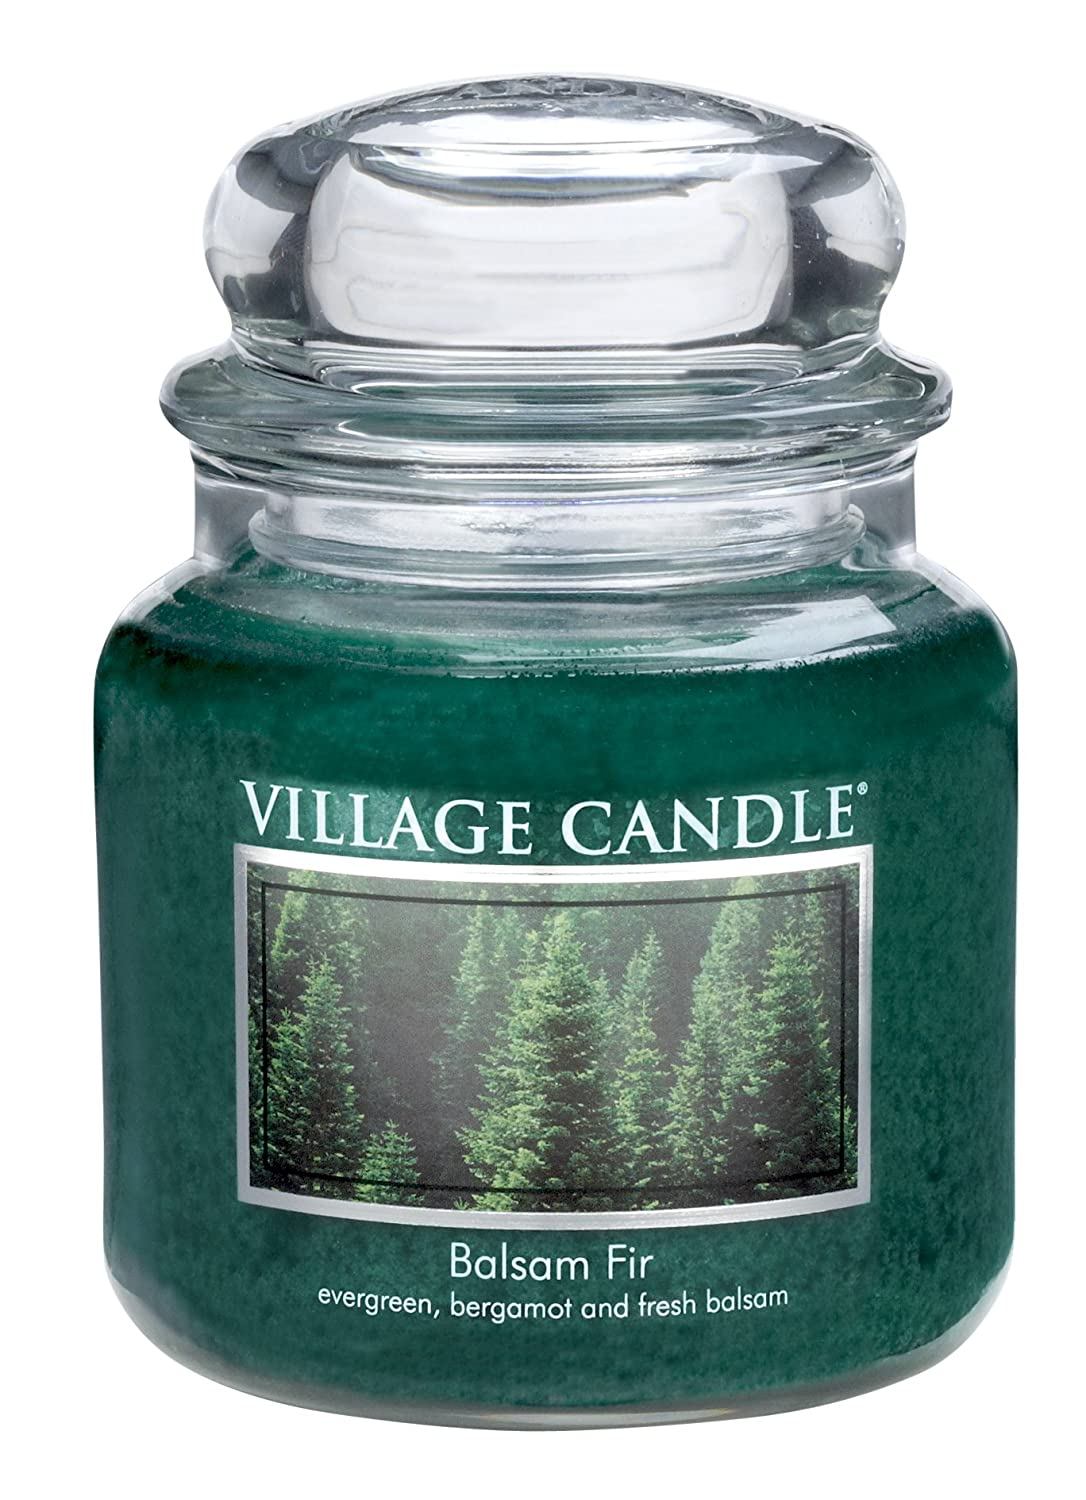 Village Candle Balsam Fir 11 oz Glass Jar Scented Candle, Small Inc. 106011383